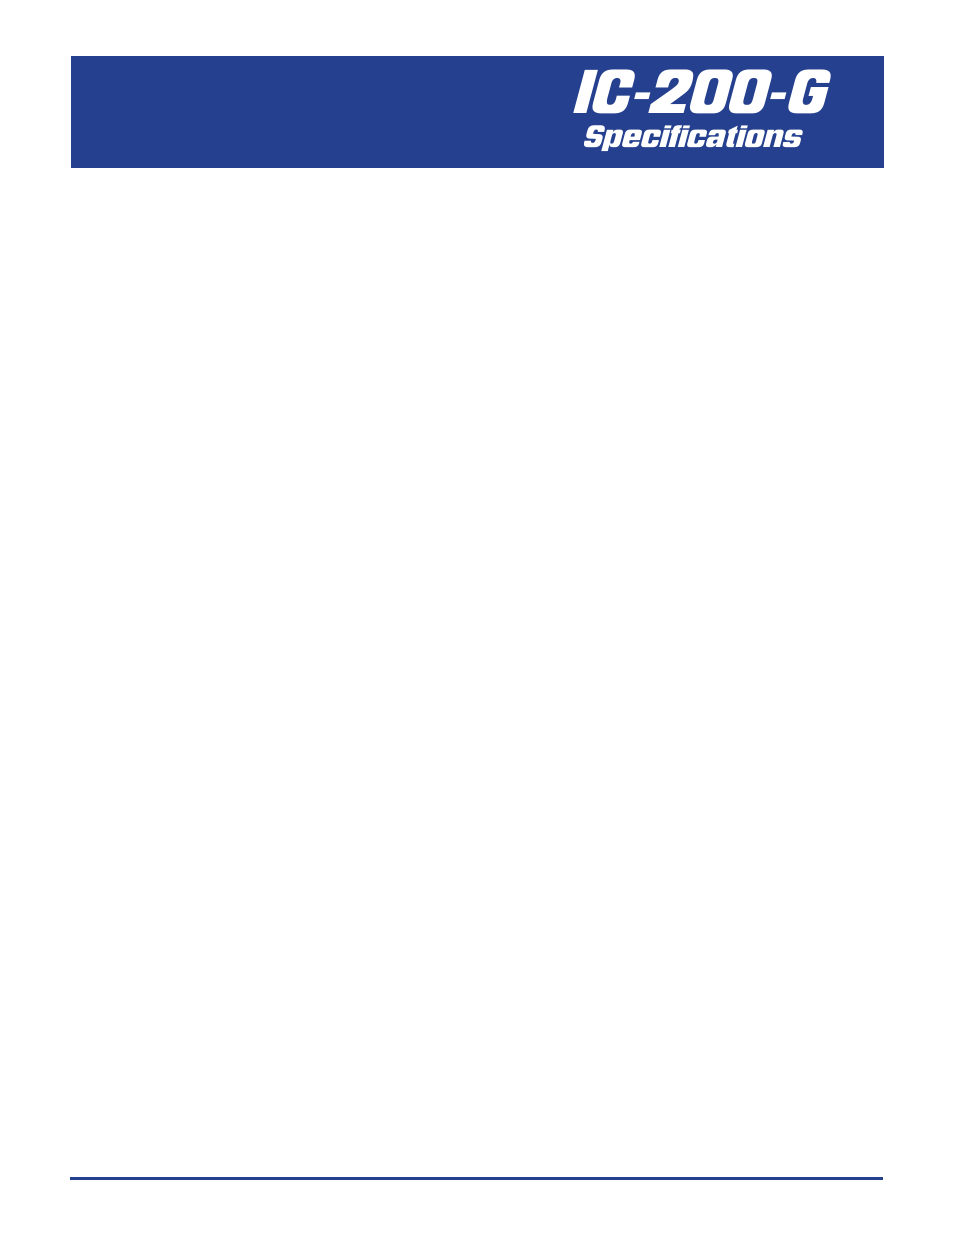 Ic-200-g, Specifications | Trade Mark Broderson IC-200 User Manual | Page 4  / 6